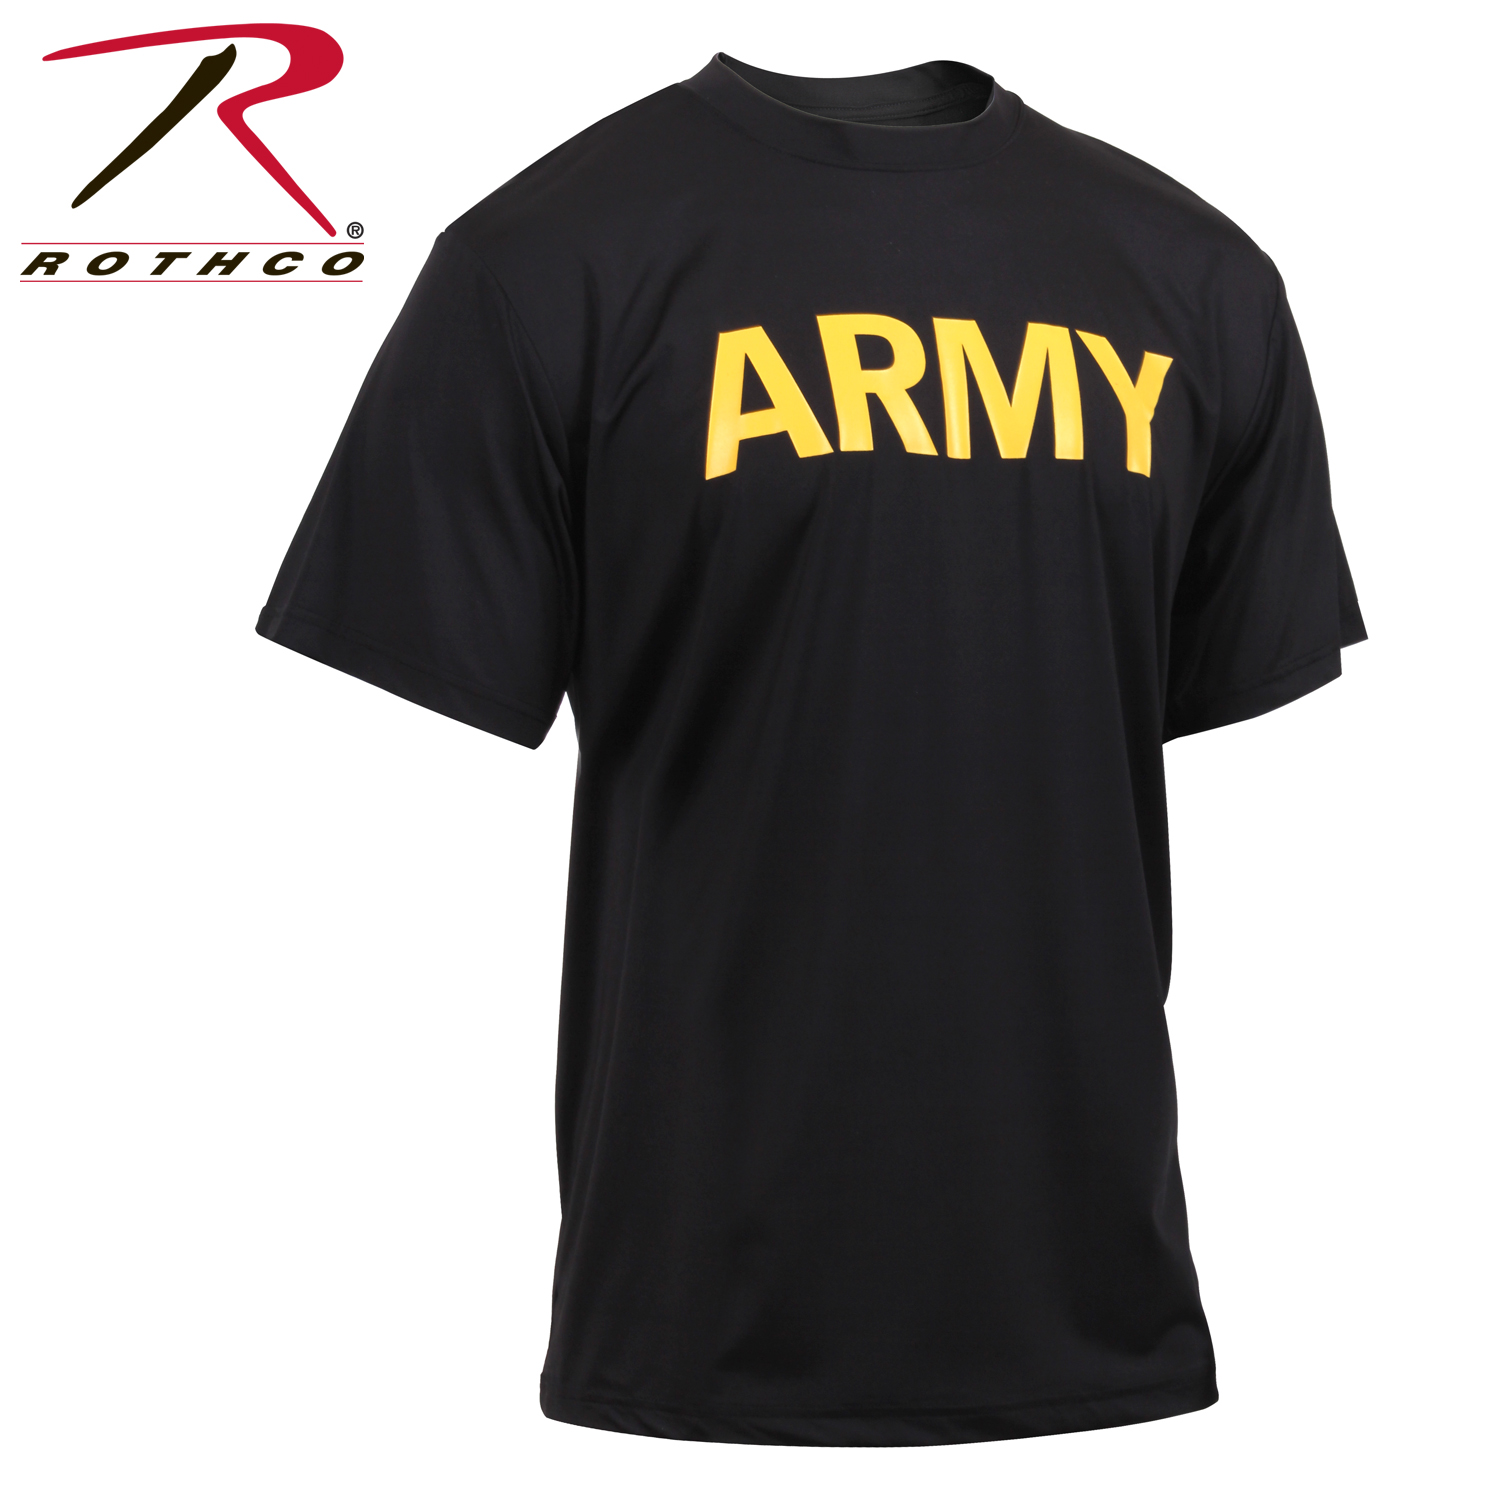 a235661e ... physical training apparel, army. Loading zoom